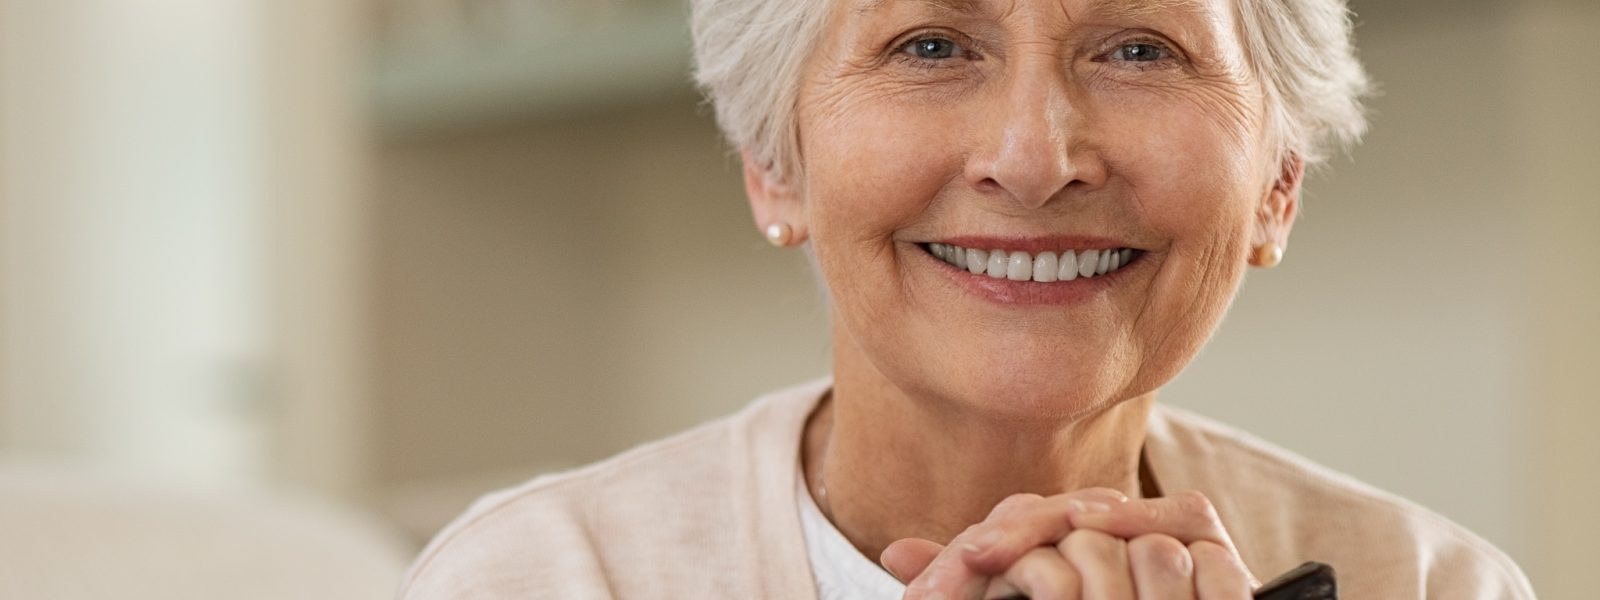 Older woman with pretty teeth smiling. This is dental work done right